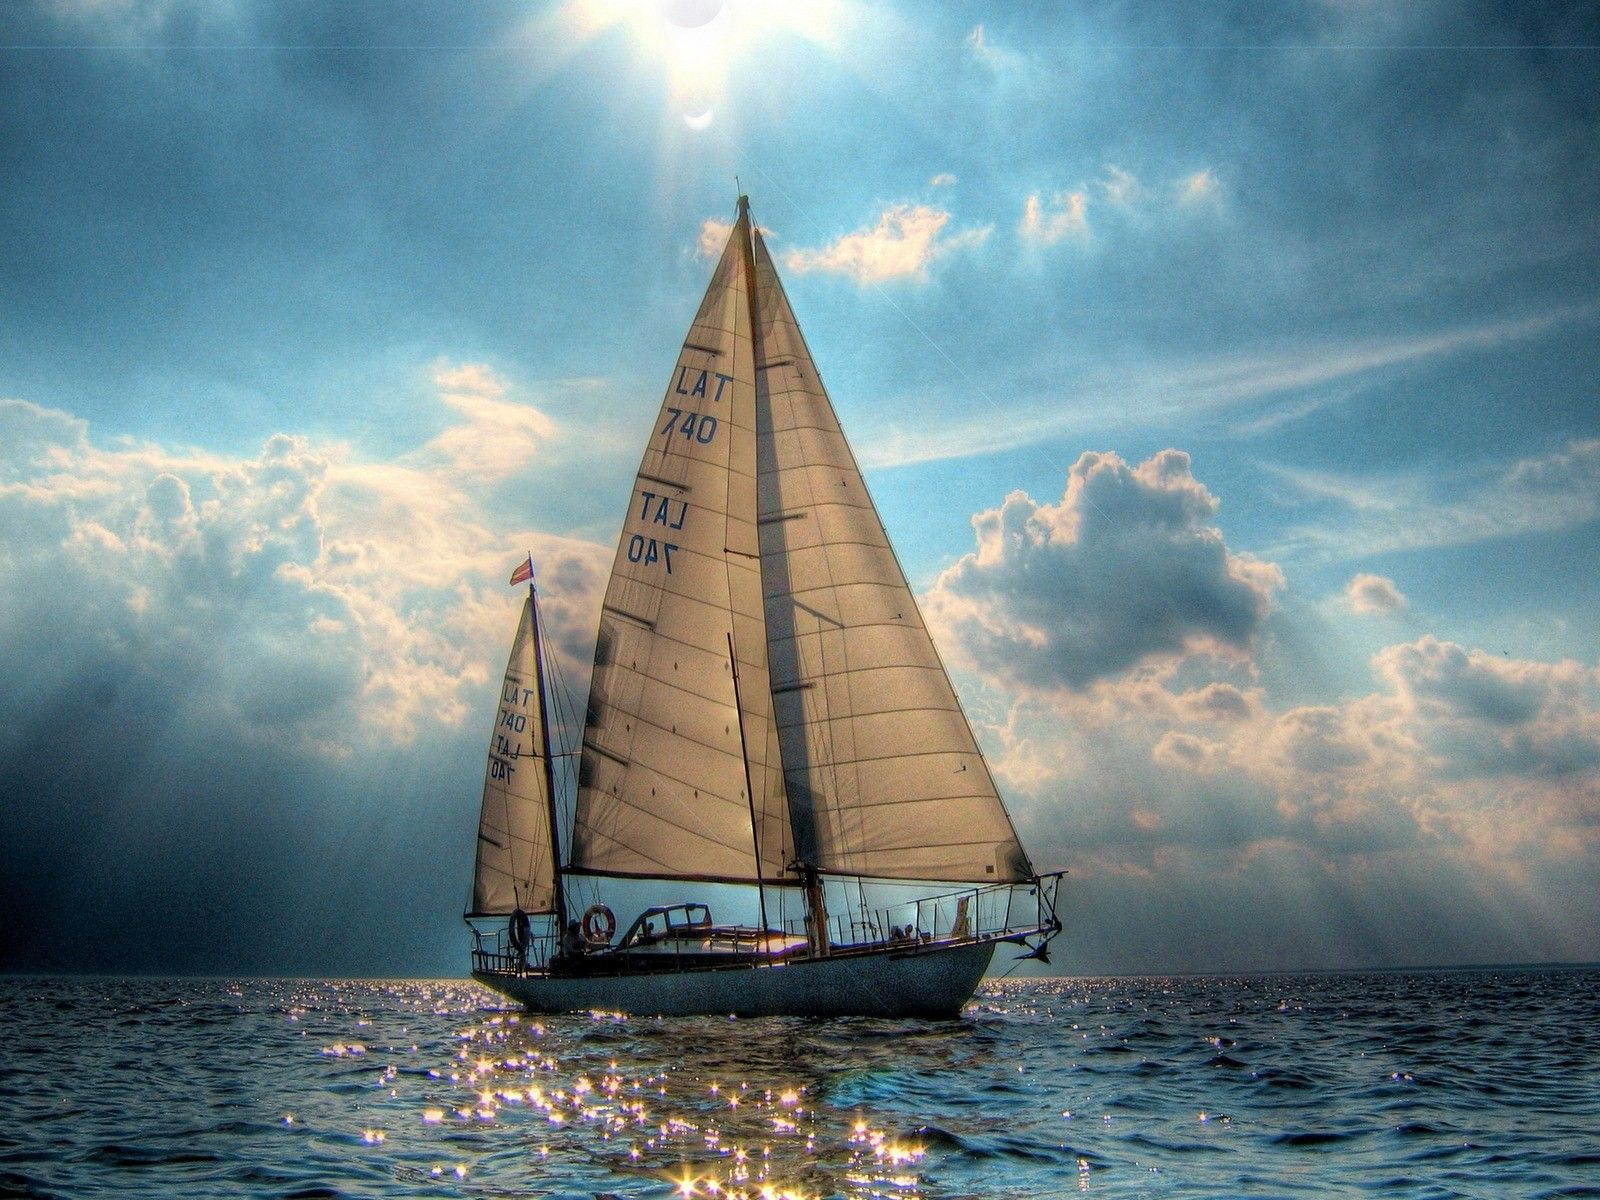 image detail for - boat sailboat sea ocean hd jootix 1600x1200